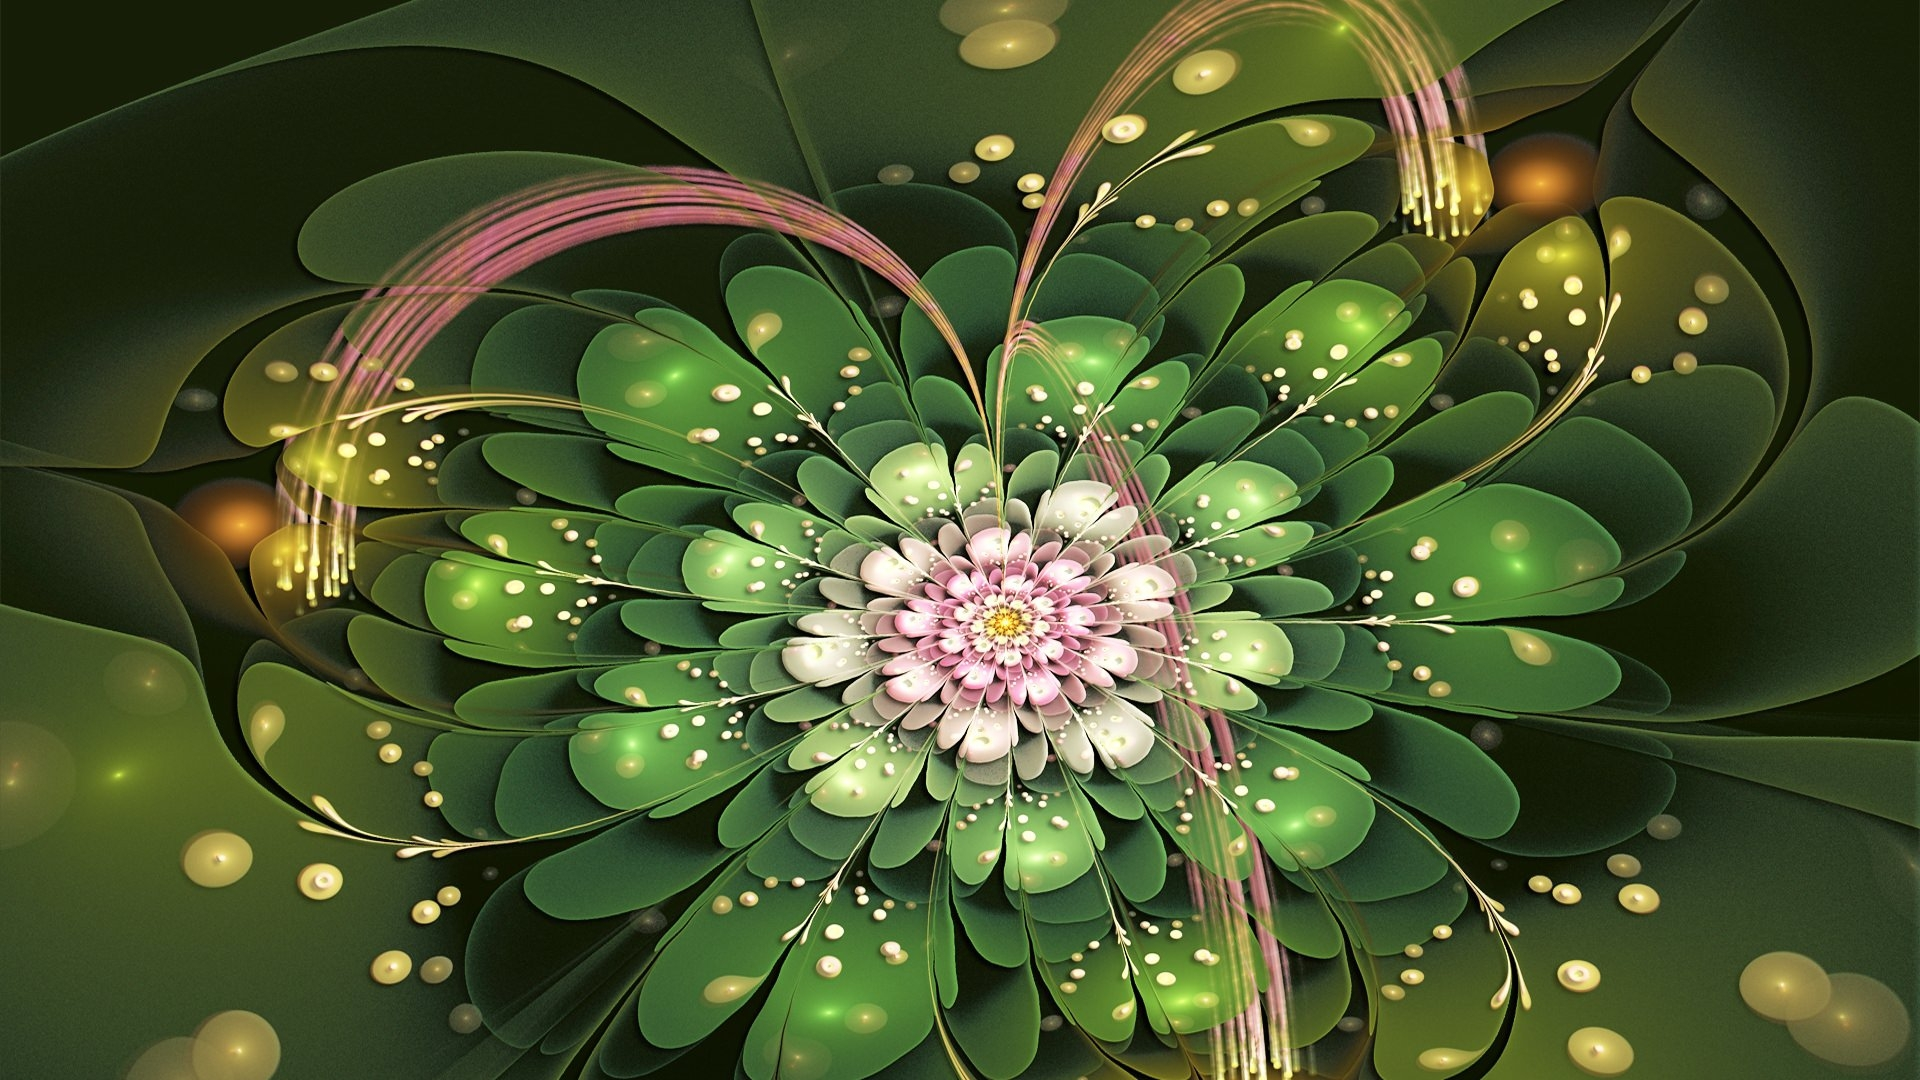 Fractal Flower Petals Green and Pink Wallpaper